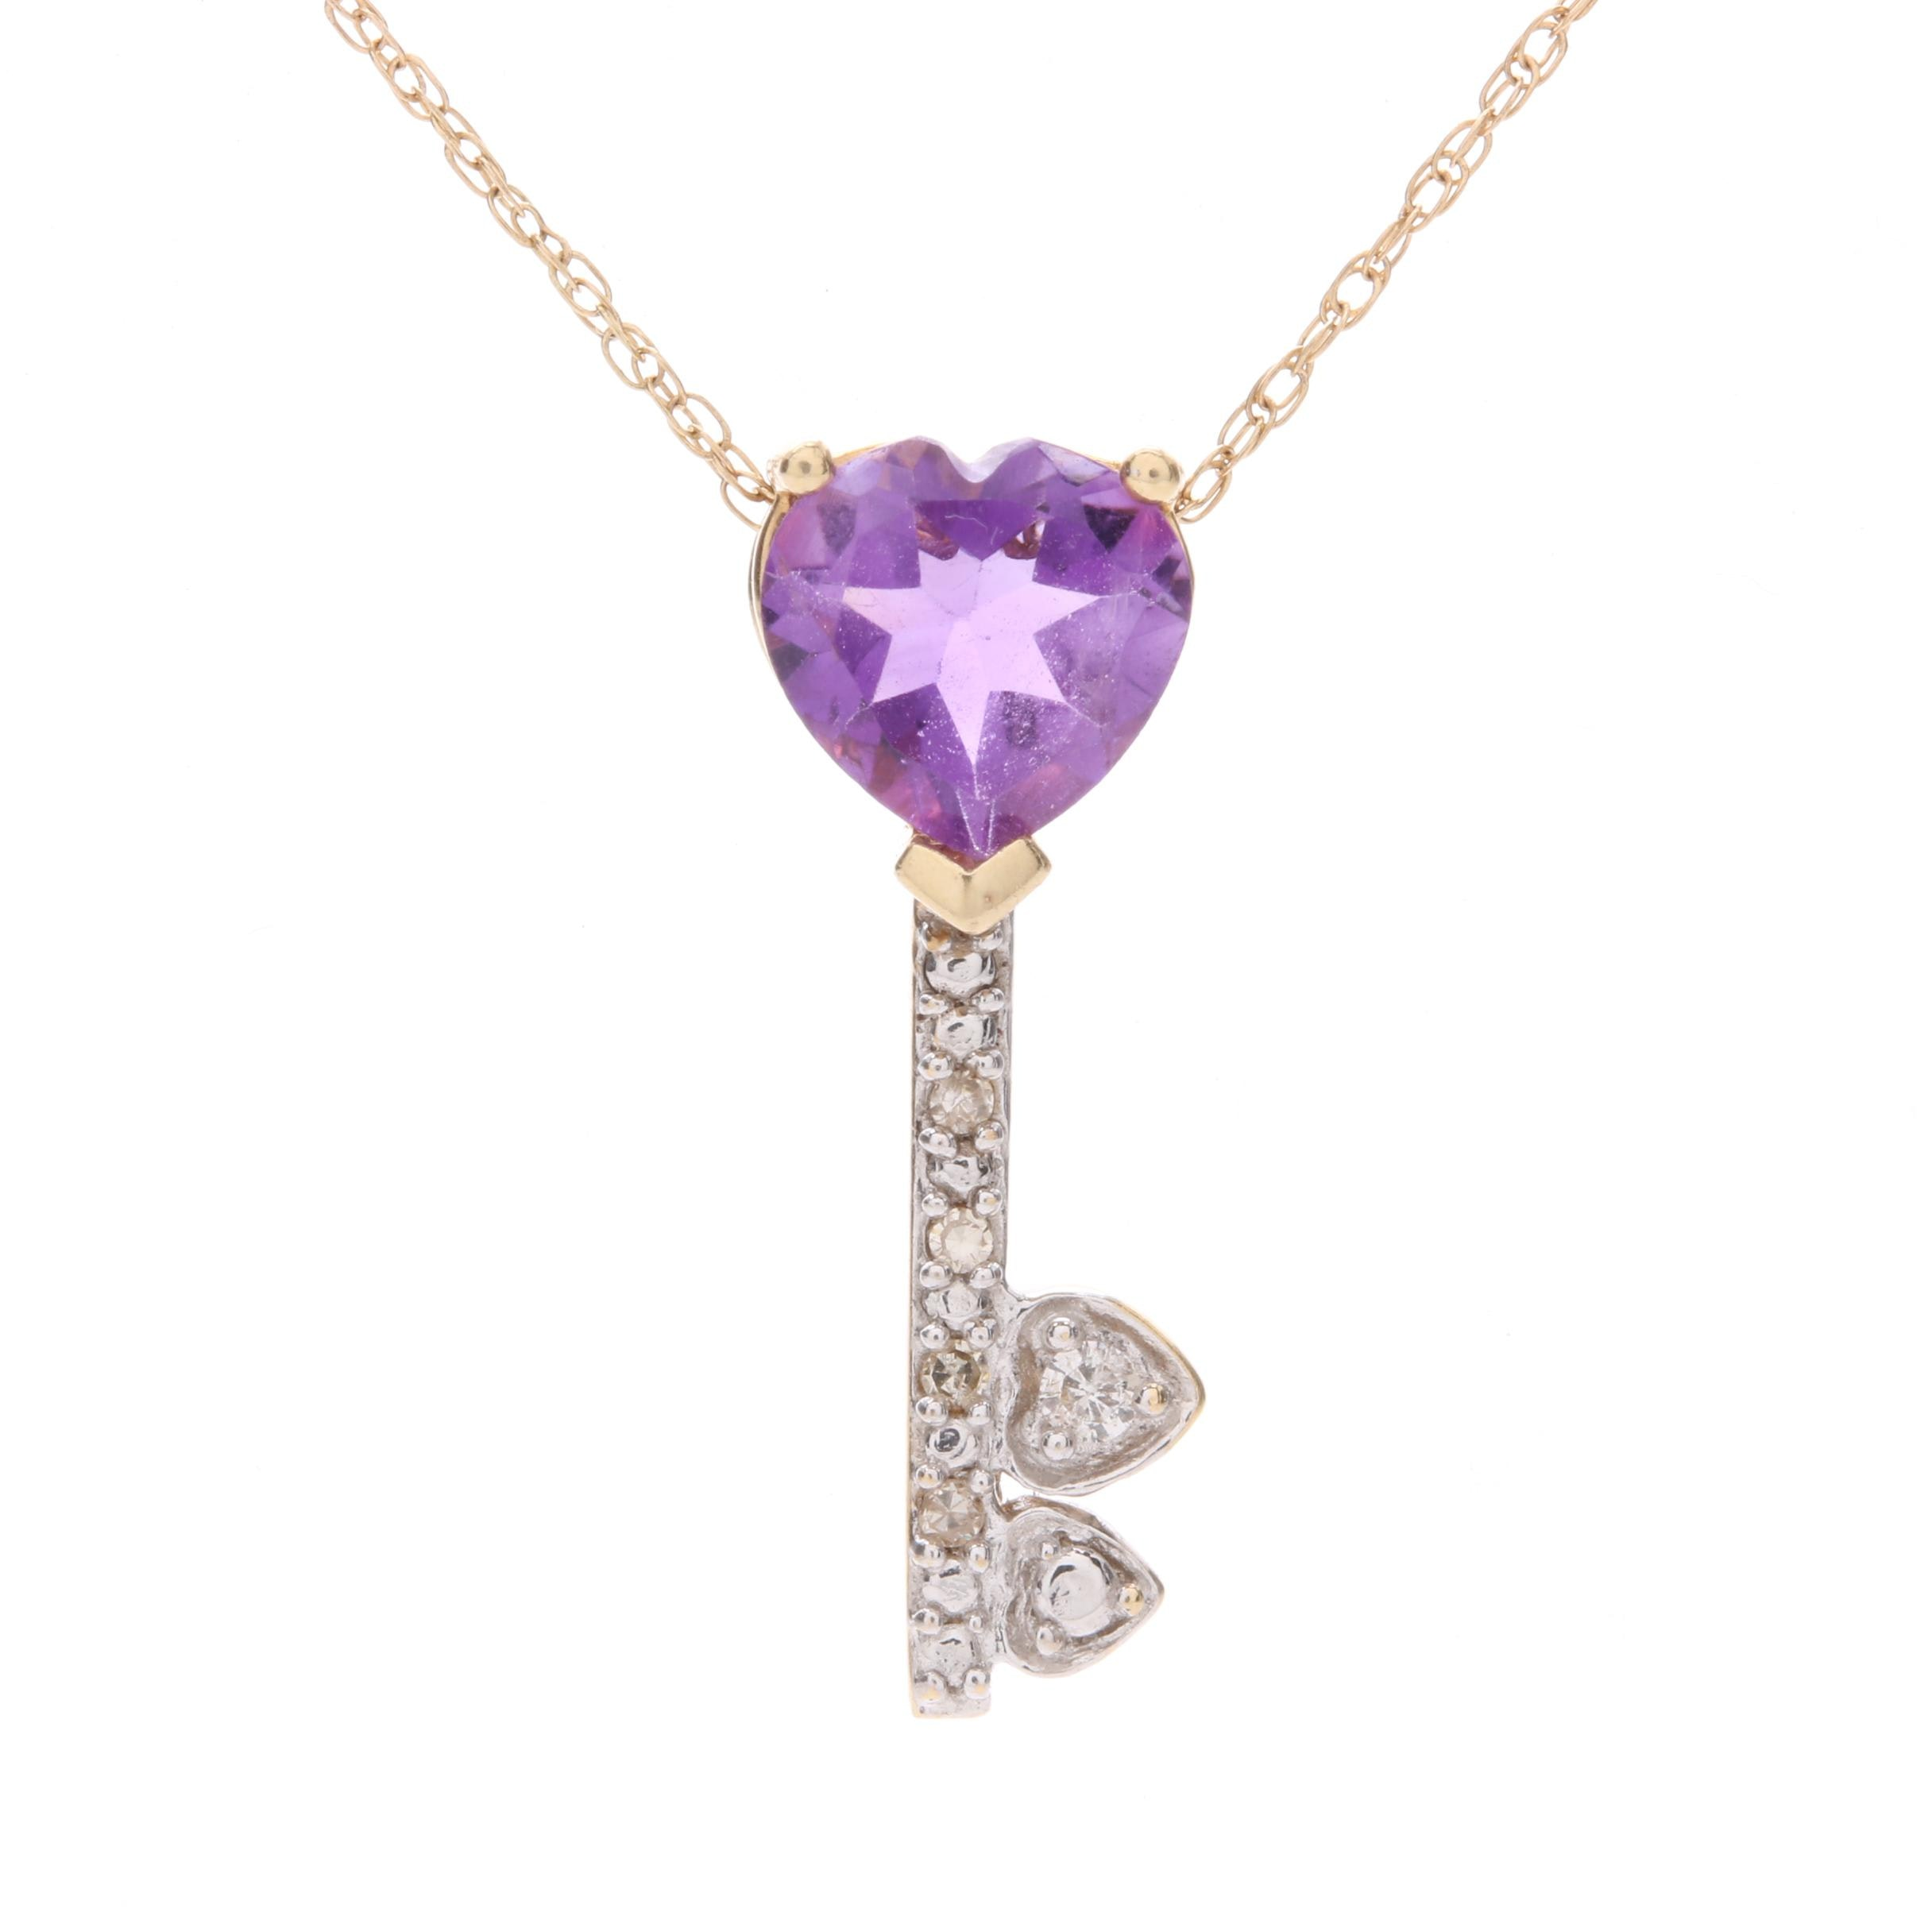 14K Yellow Gold Amethyst and Diamond Pendant Necklace with White Gold Accents